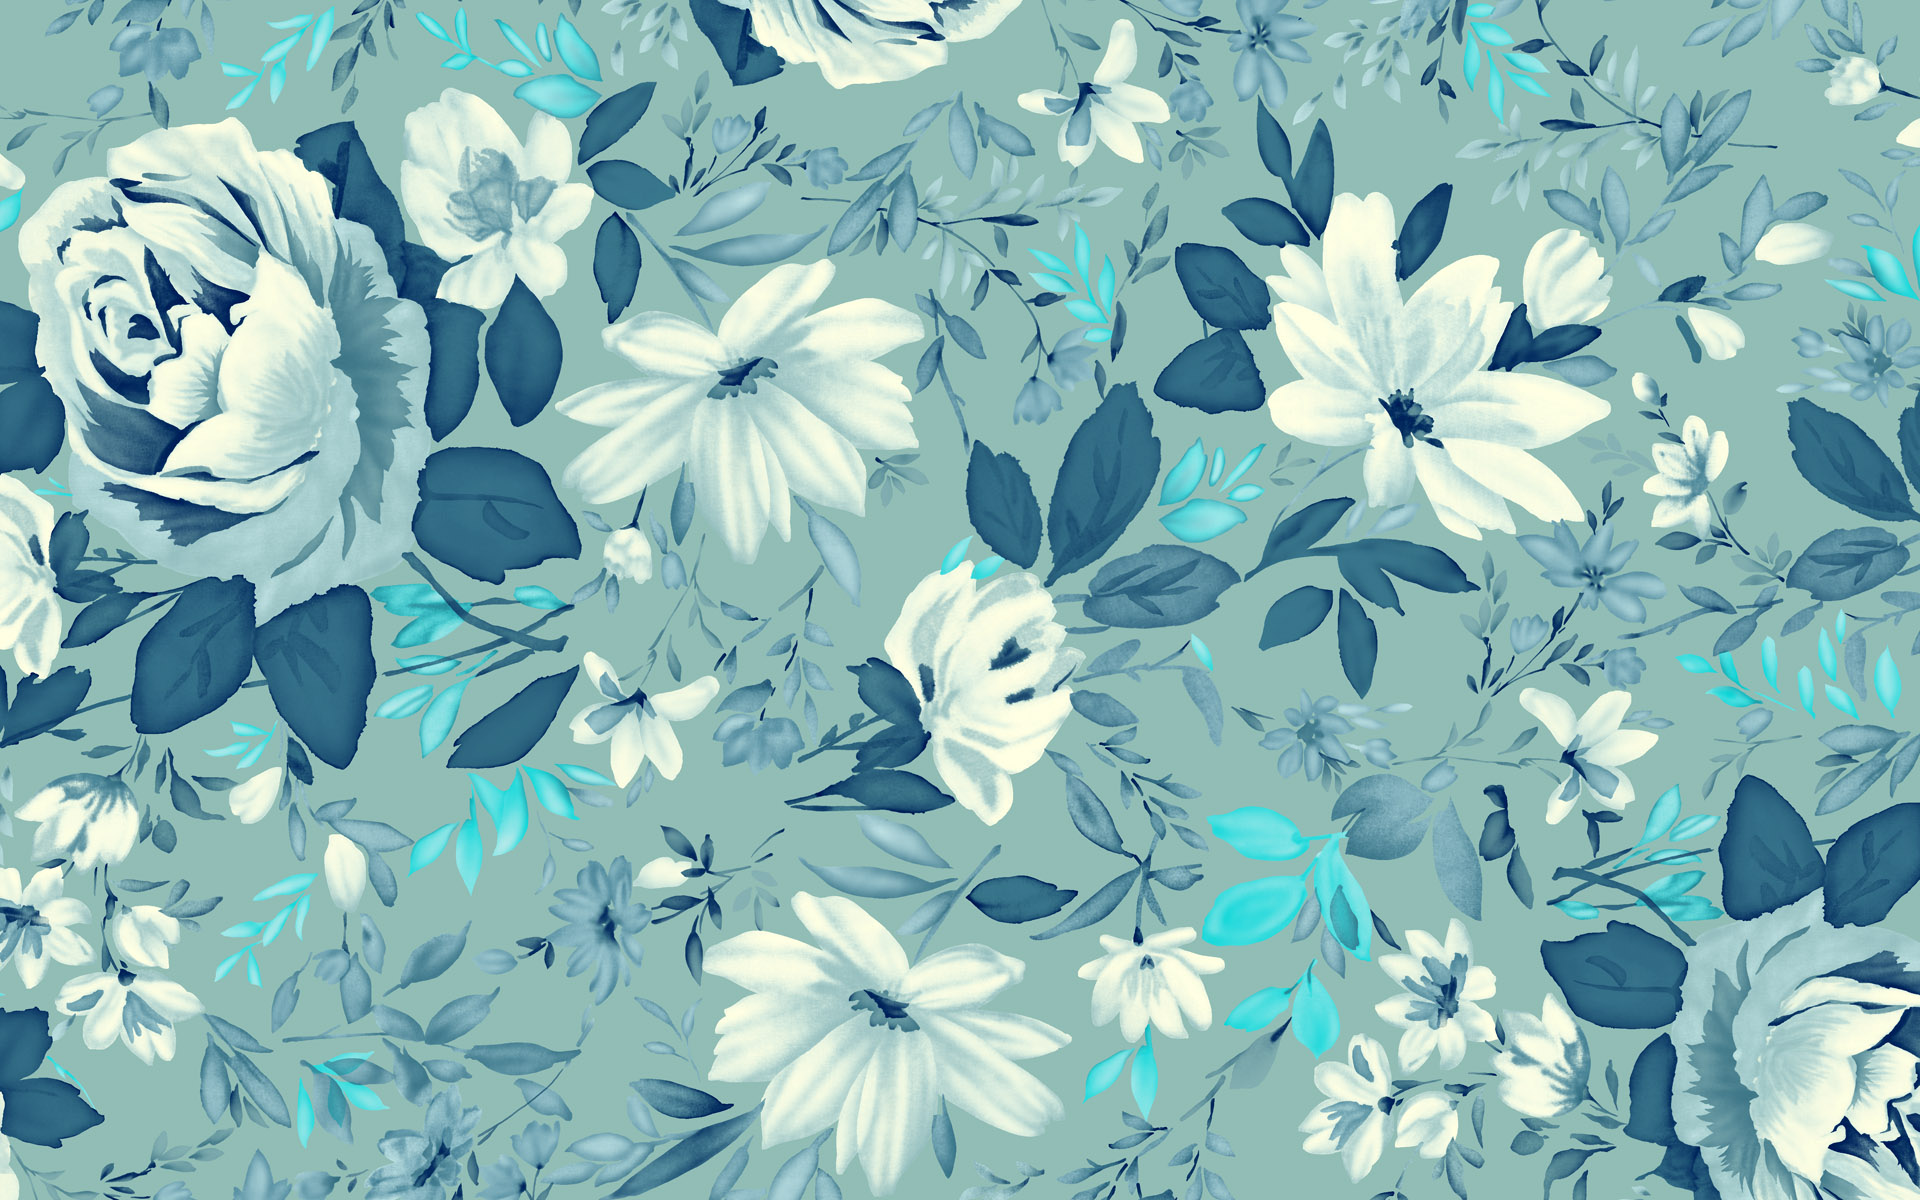 Floral Patterns Tumblr Background